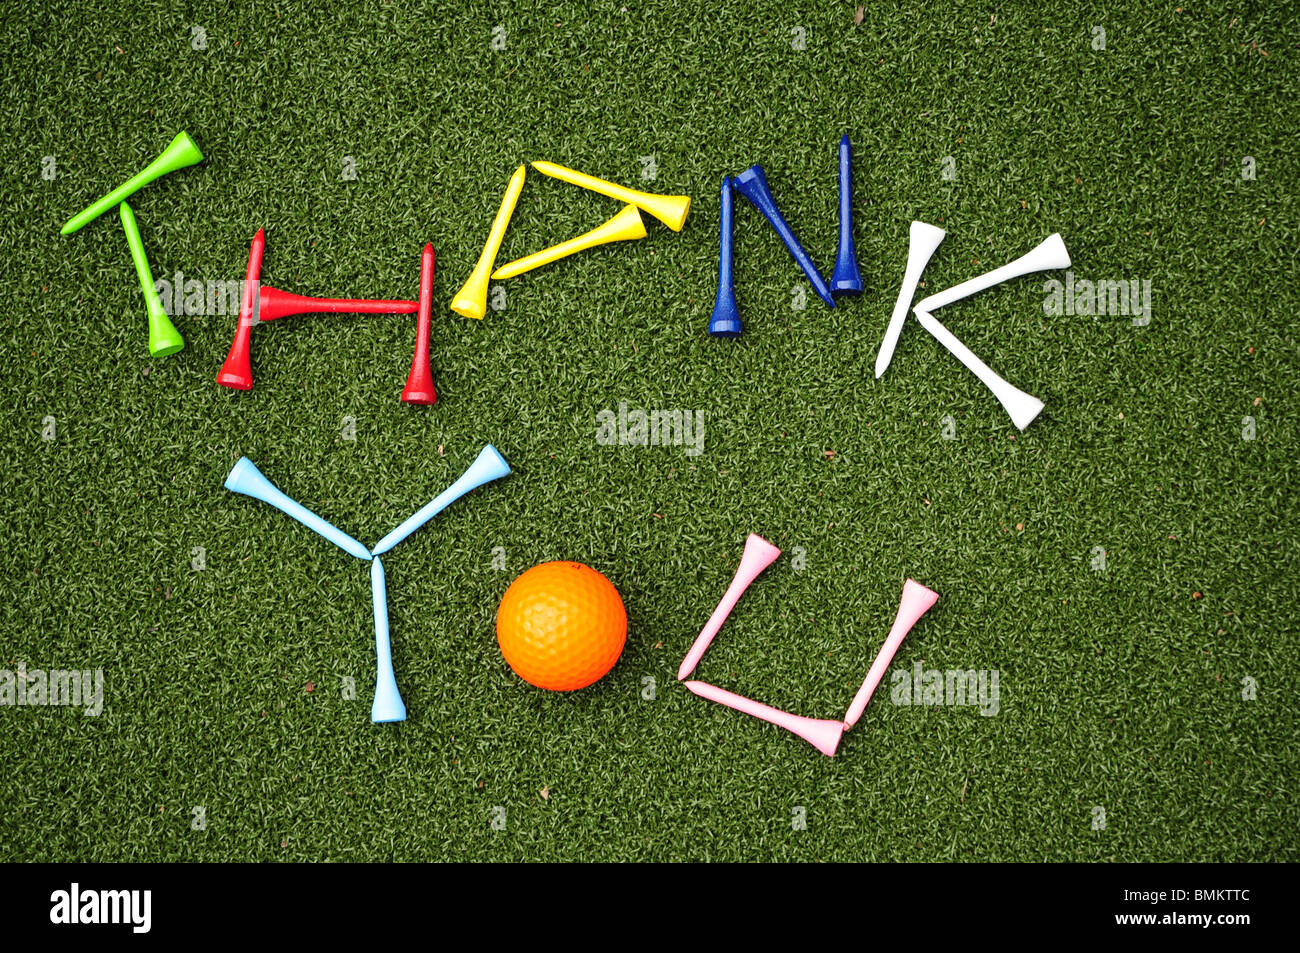 golf tees spell out thank you - Stock Image